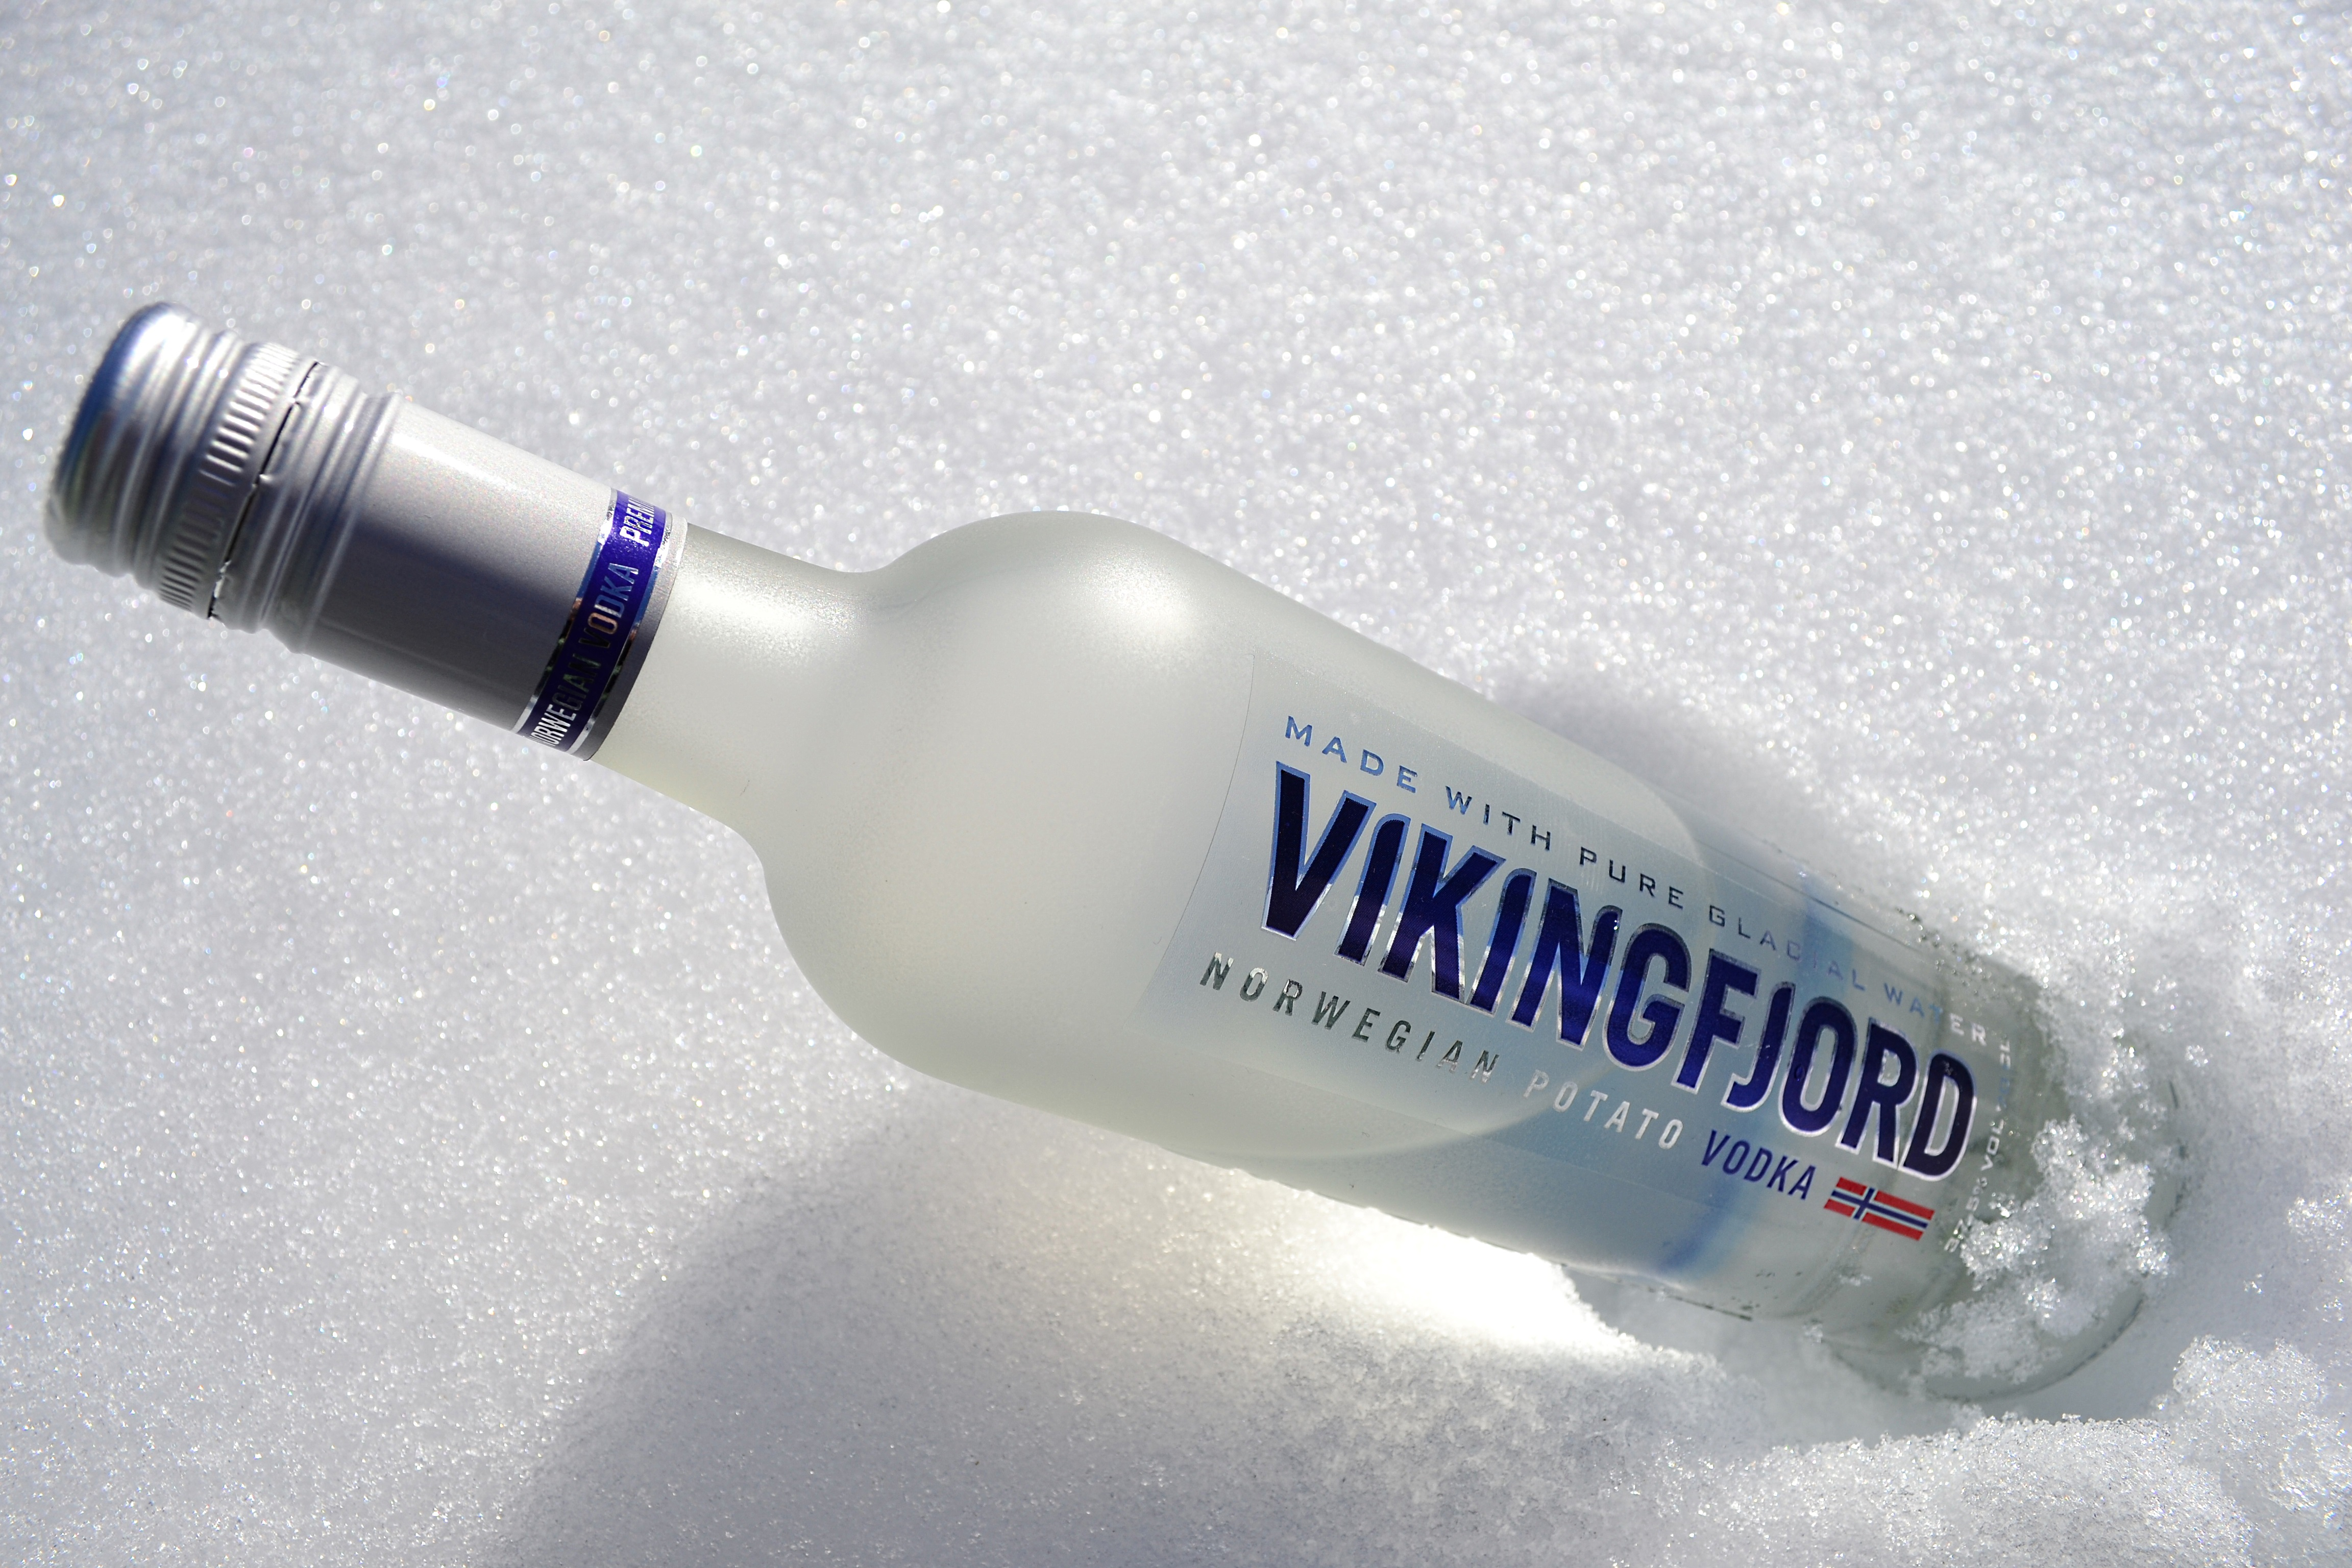 Vikingfjord norwegian potato vodka